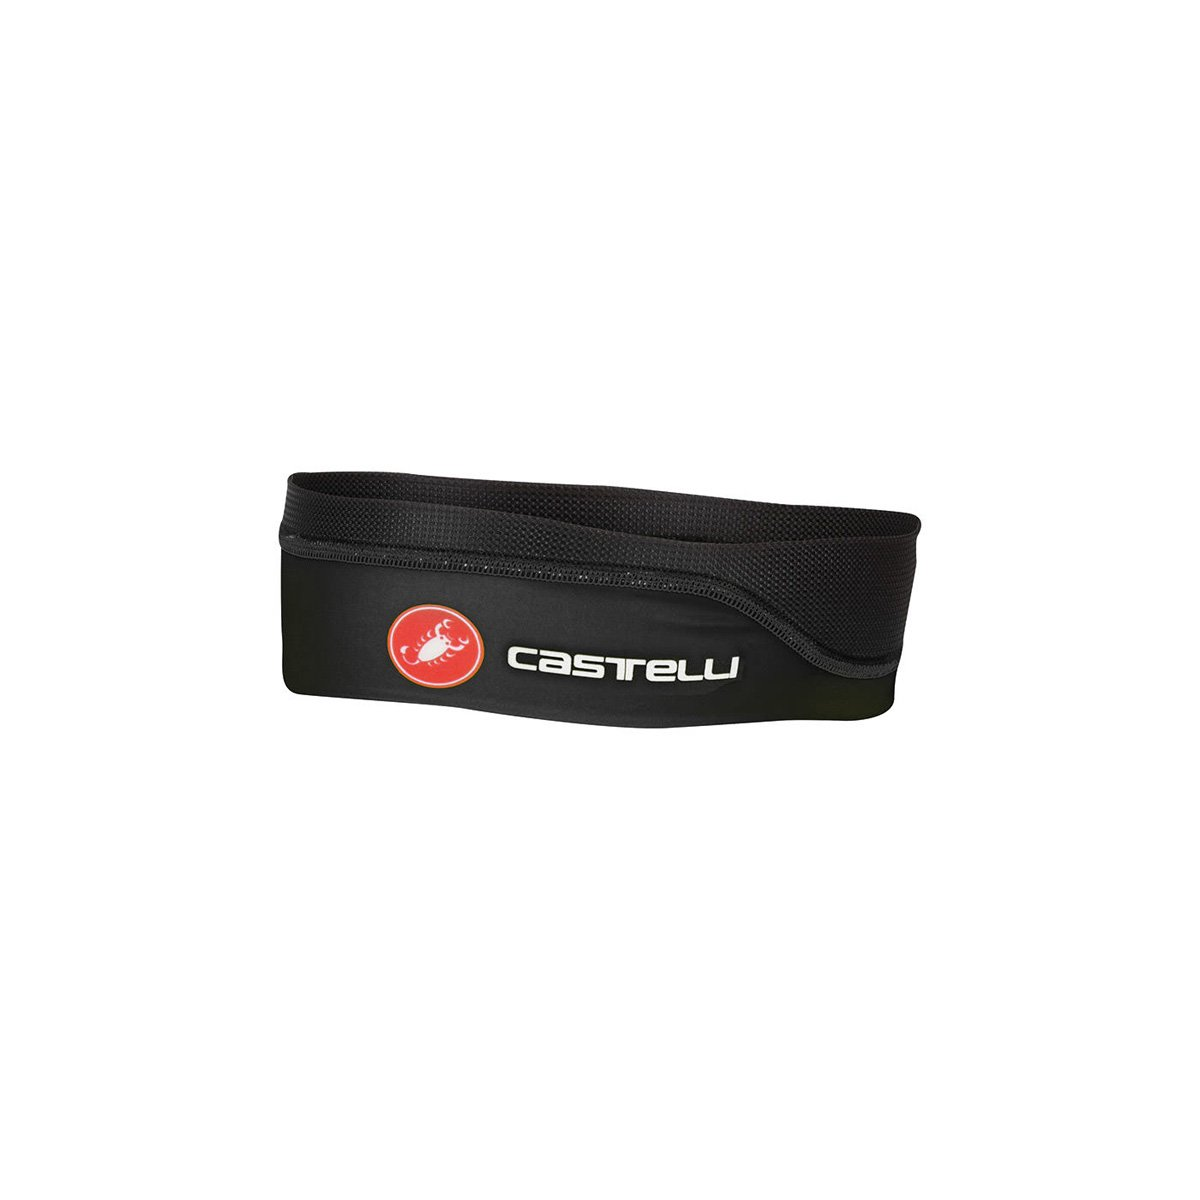 Castelli 2016 Summer Cycling Headband - H16044 H16044010